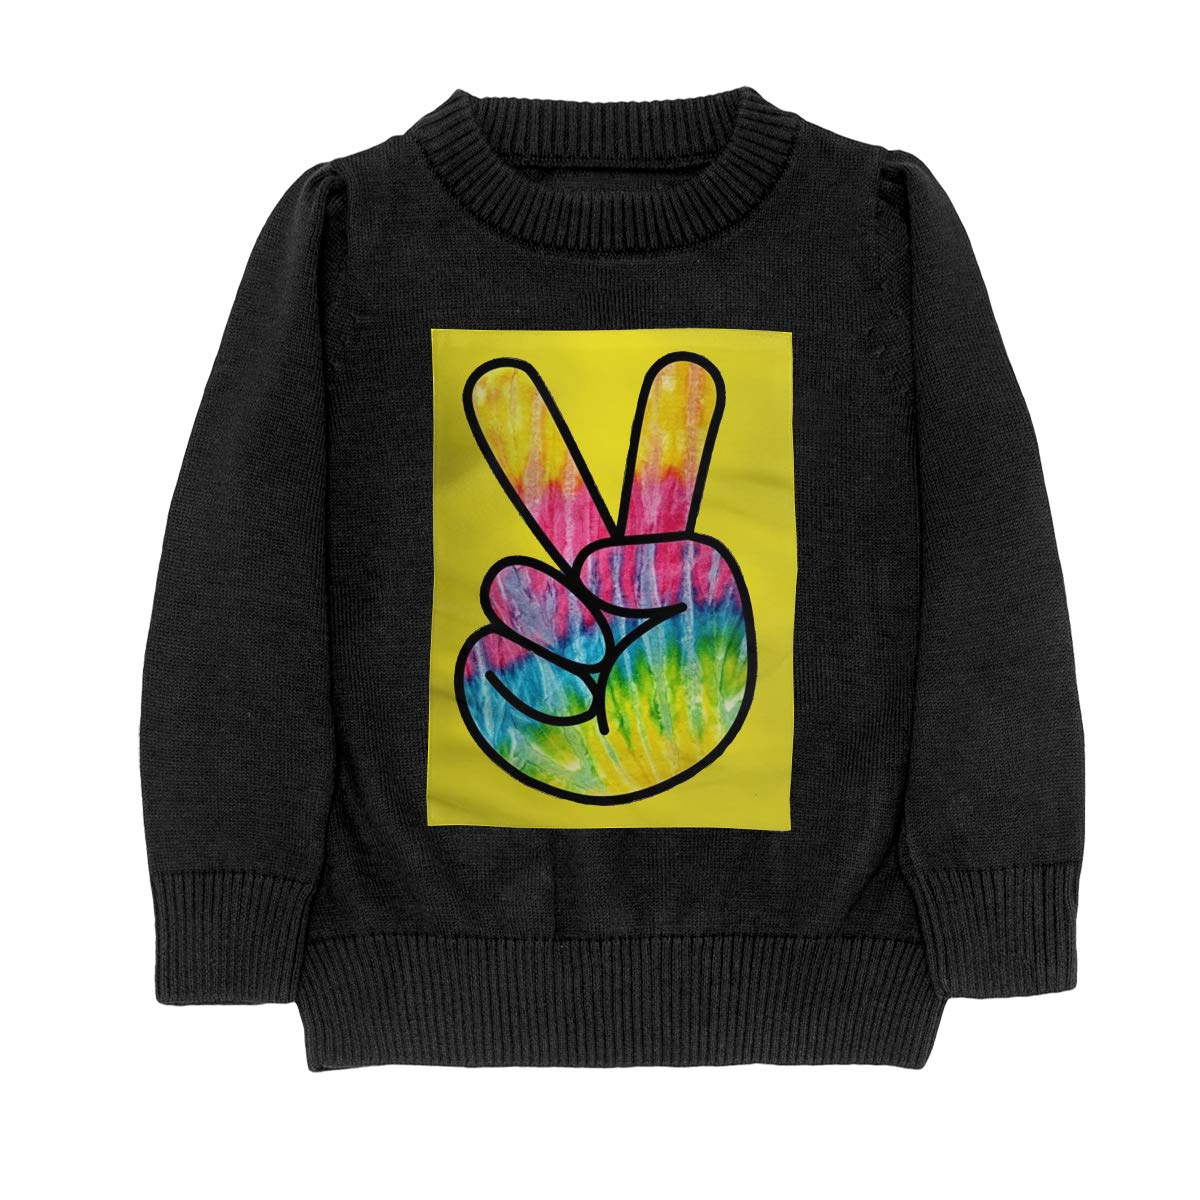 WWTBBJ-B Tie Dye Psychedelic Peace Sign Casual Teenager Boys /& Girls Unisex Sweater Keep Warm